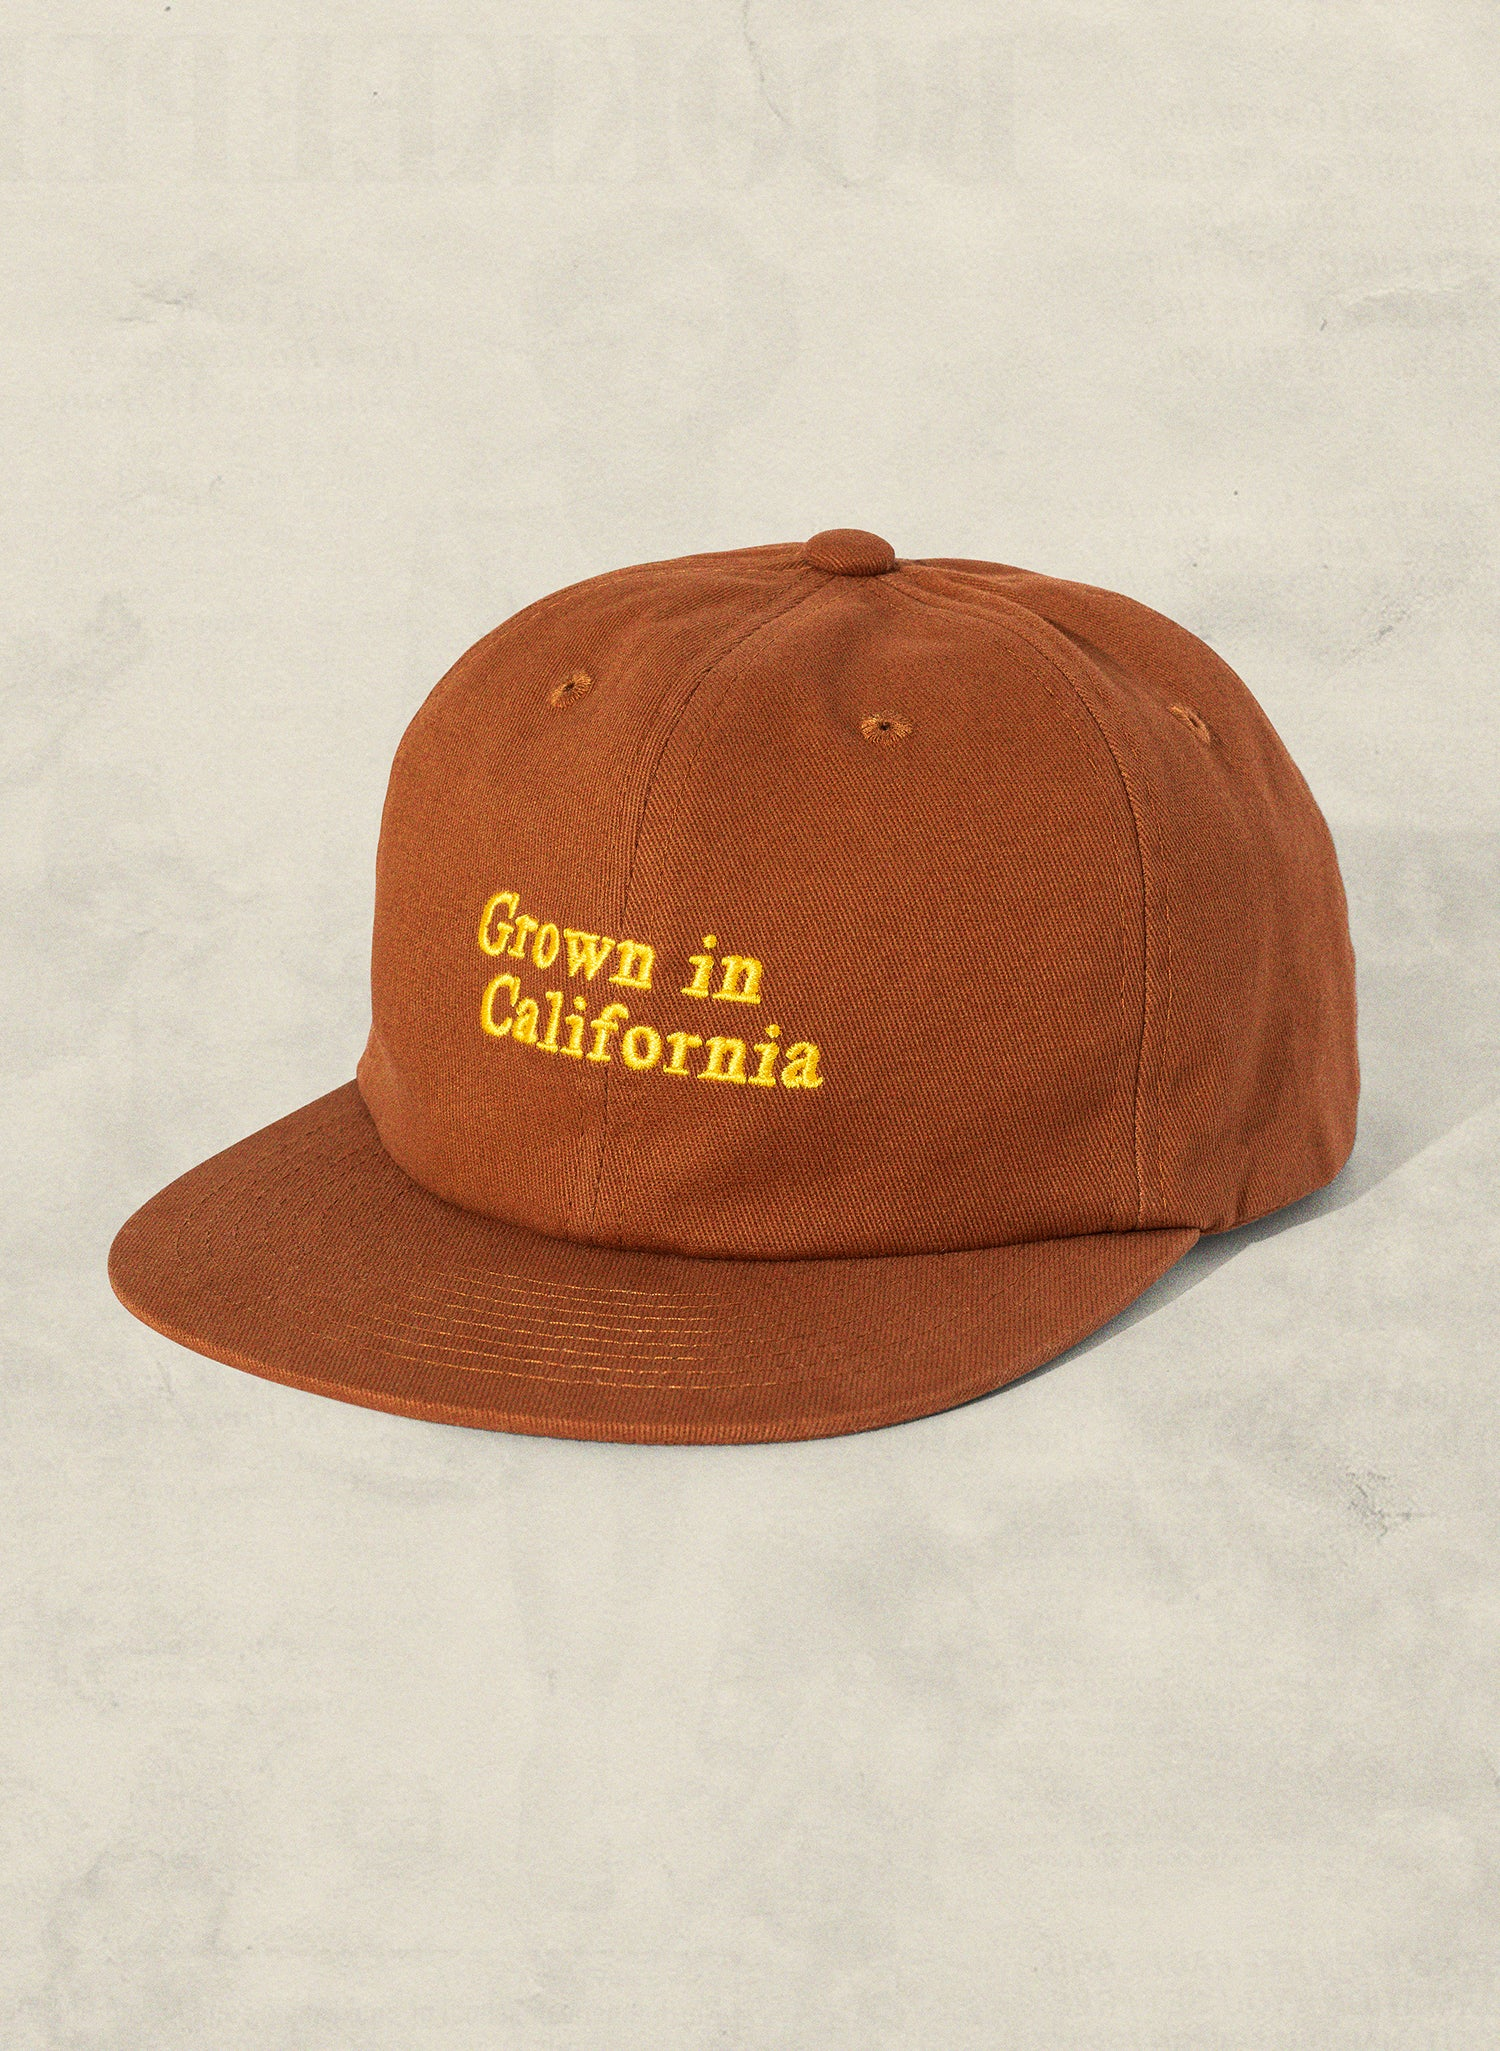 Grown in California Rust Field Trip Unstructured 6 Panel Workwear Hat Lifestyle Retro Vintage 70s